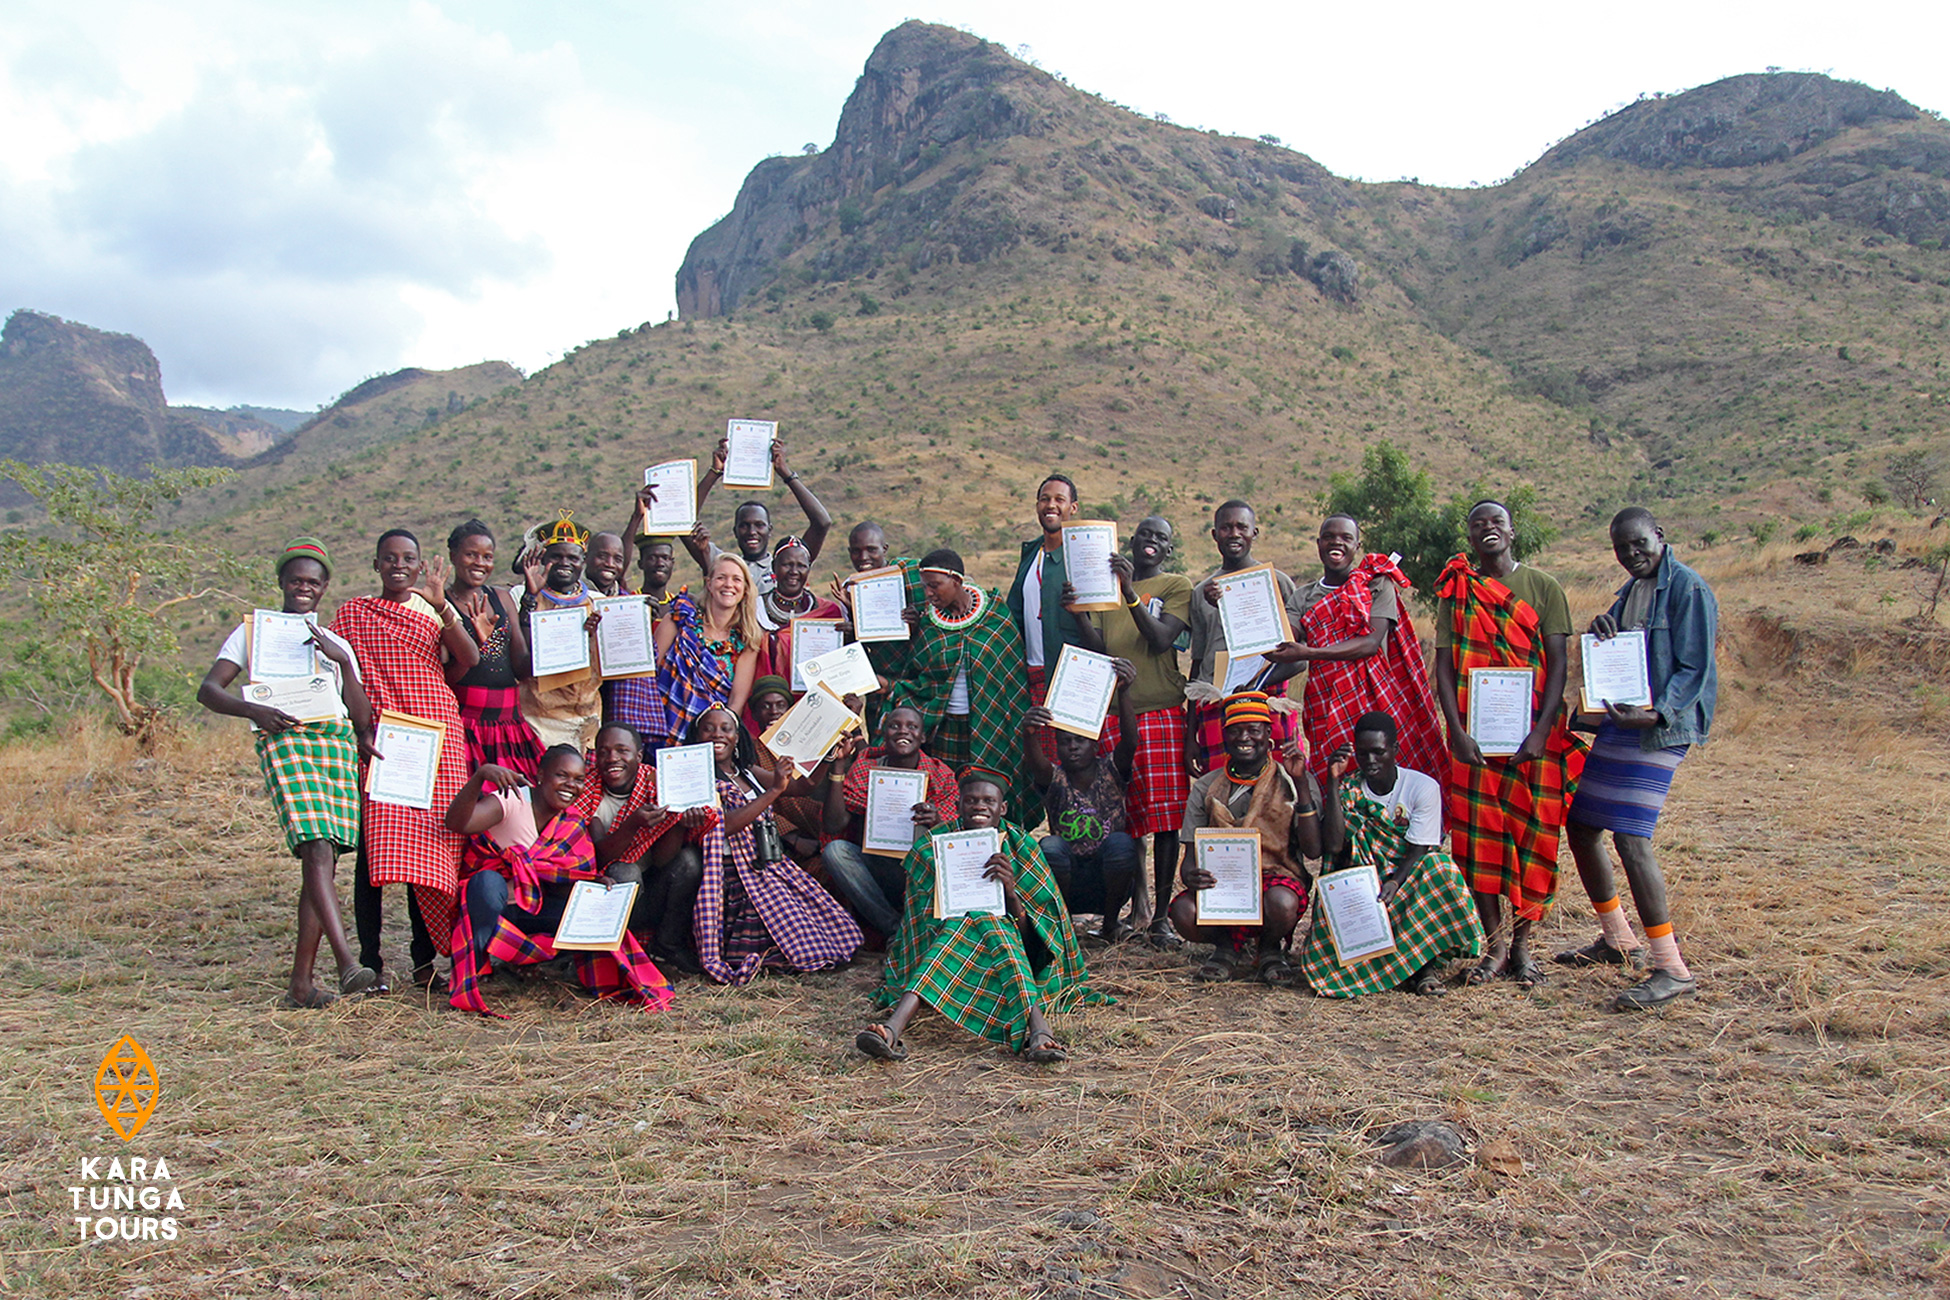 Kara-Tunga-Karamoja-Tours-Travel-Safari-Guides-Gradutation-USAGA